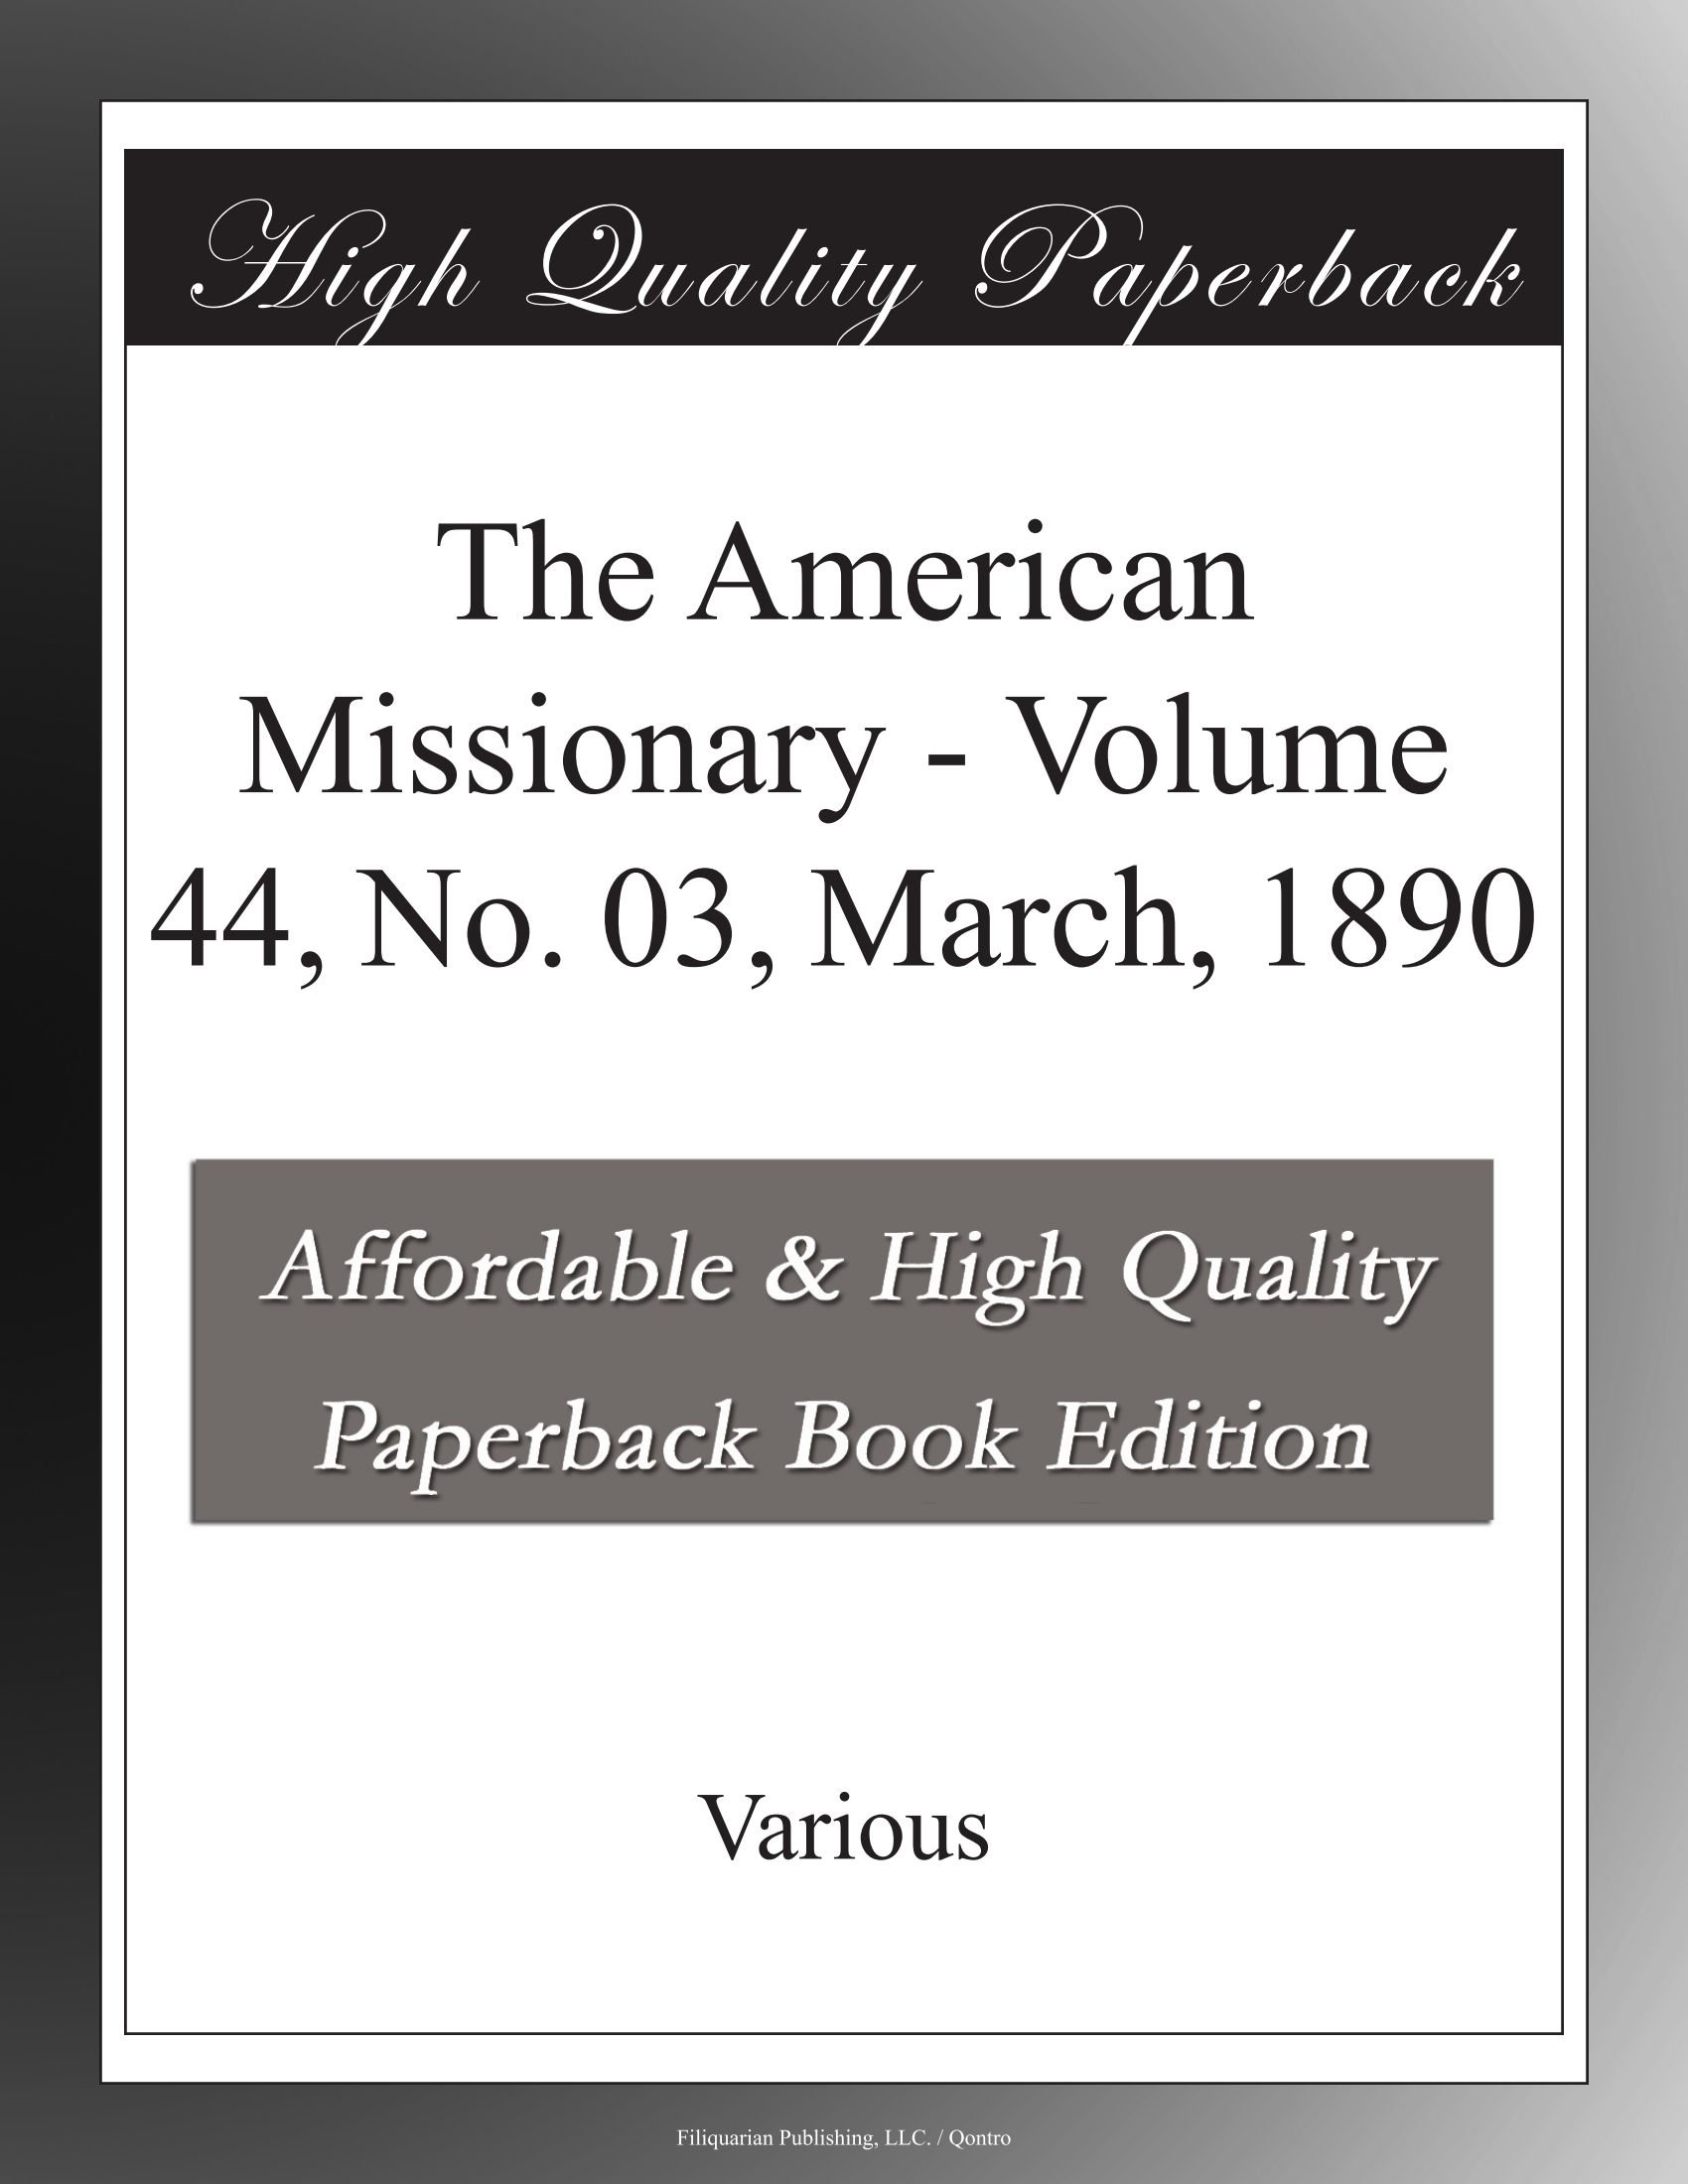 The American Missionary - Volume 44, No. 03, March, 1890 ebook